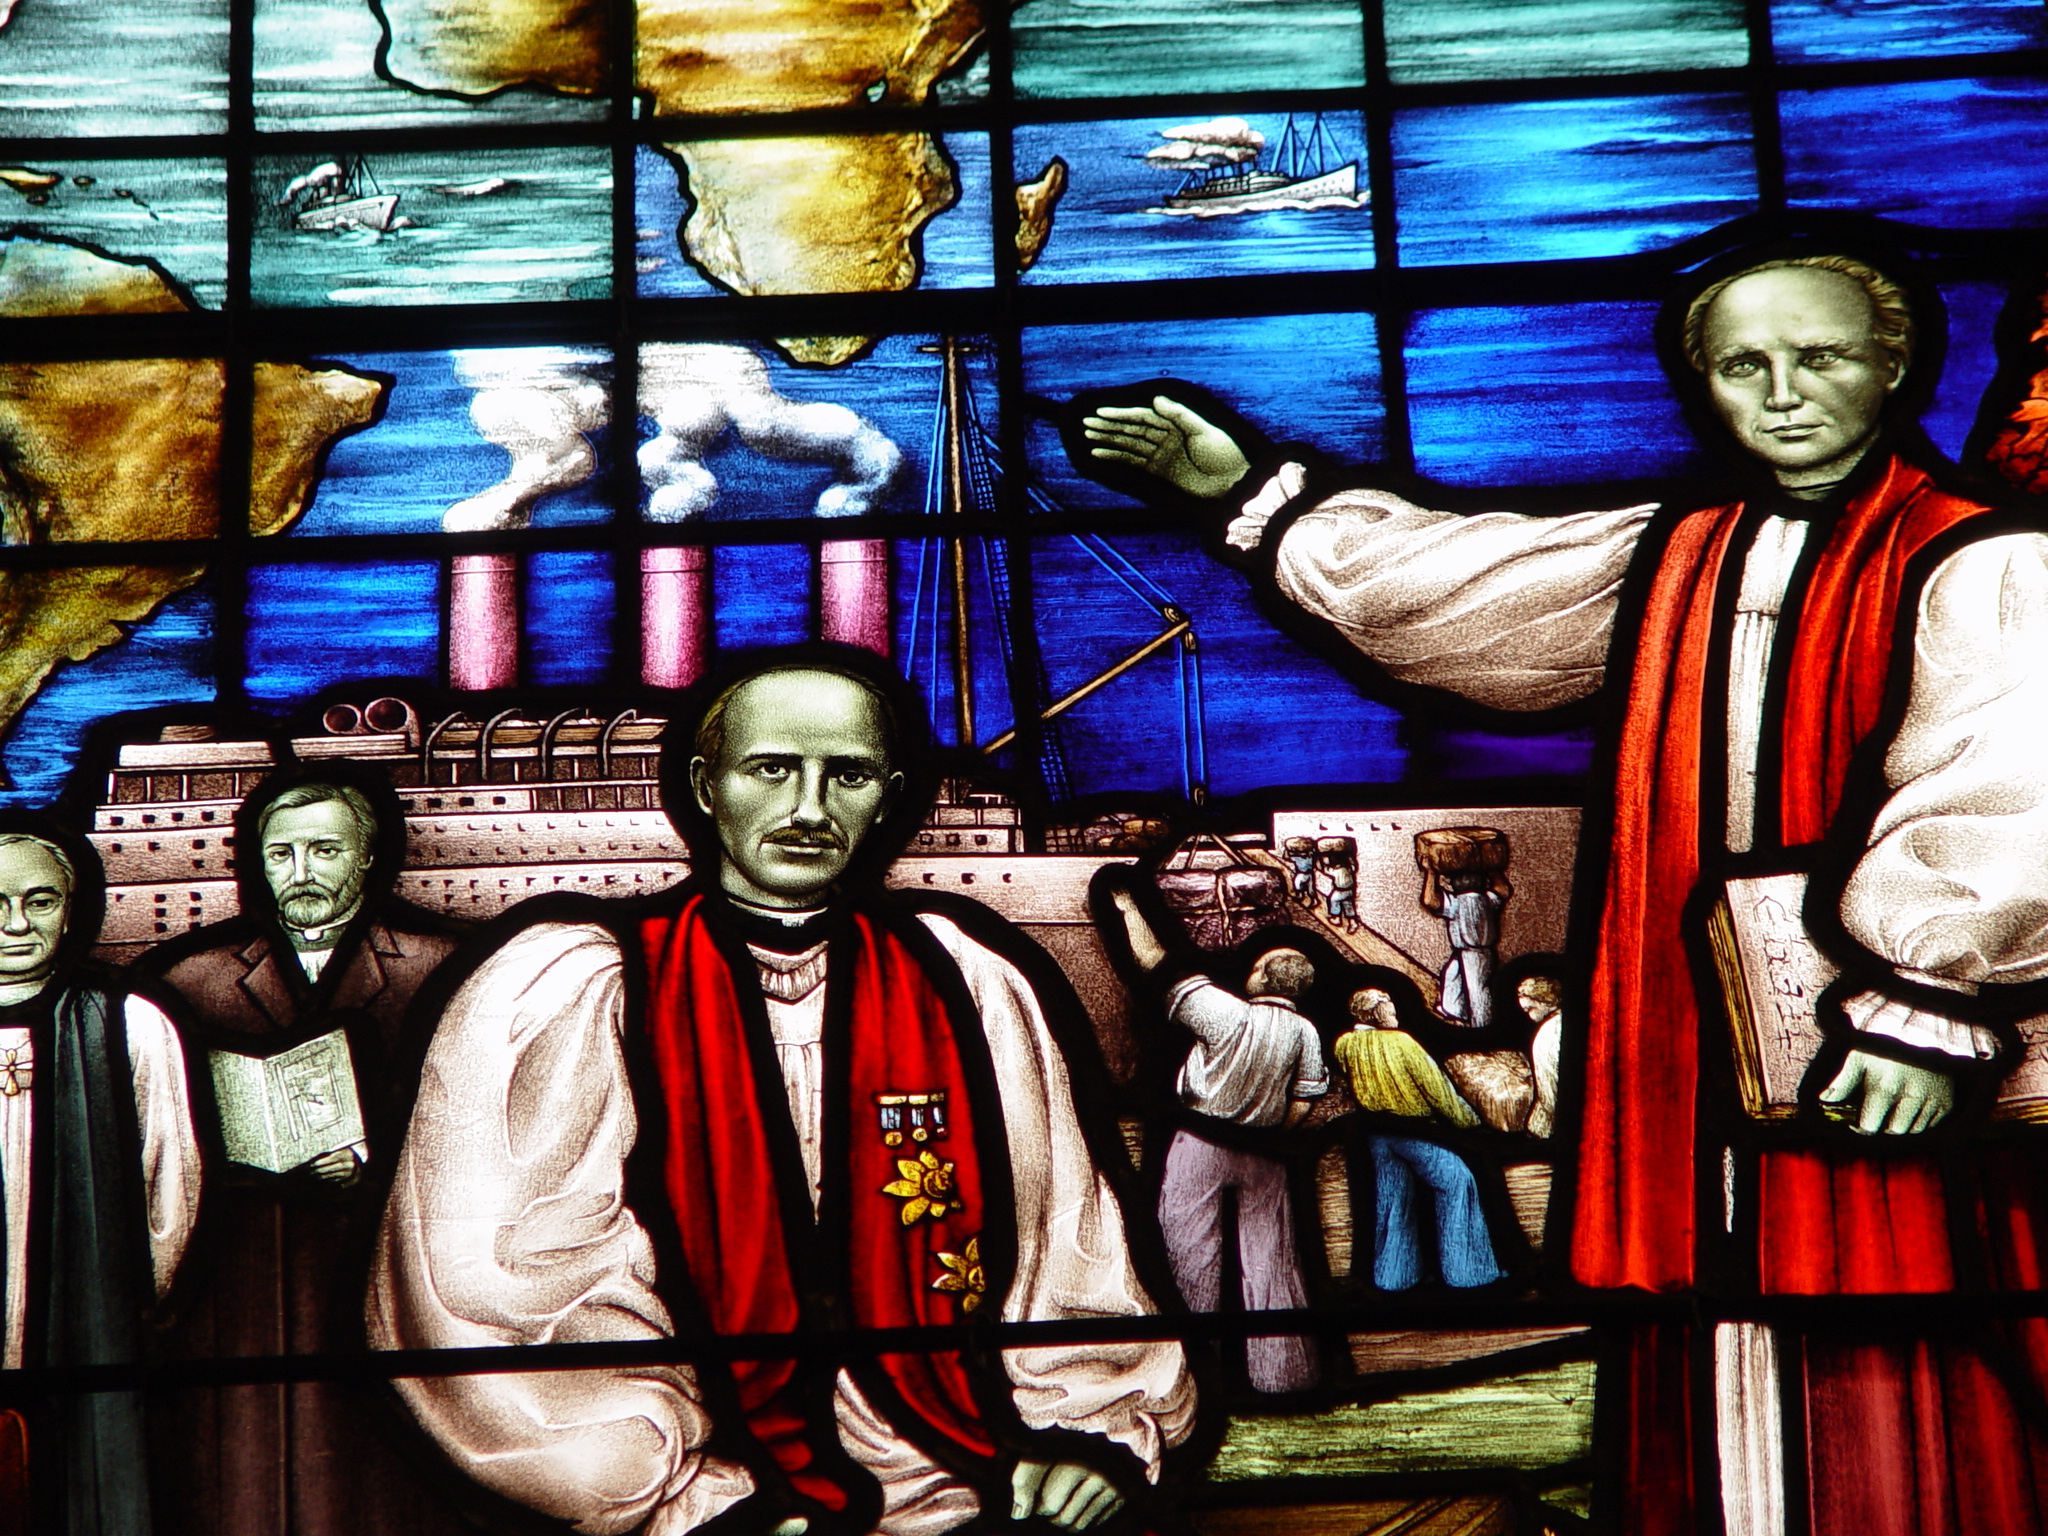 Stain glass depicting missionary to the Araucanian People in Chile 1895-1919